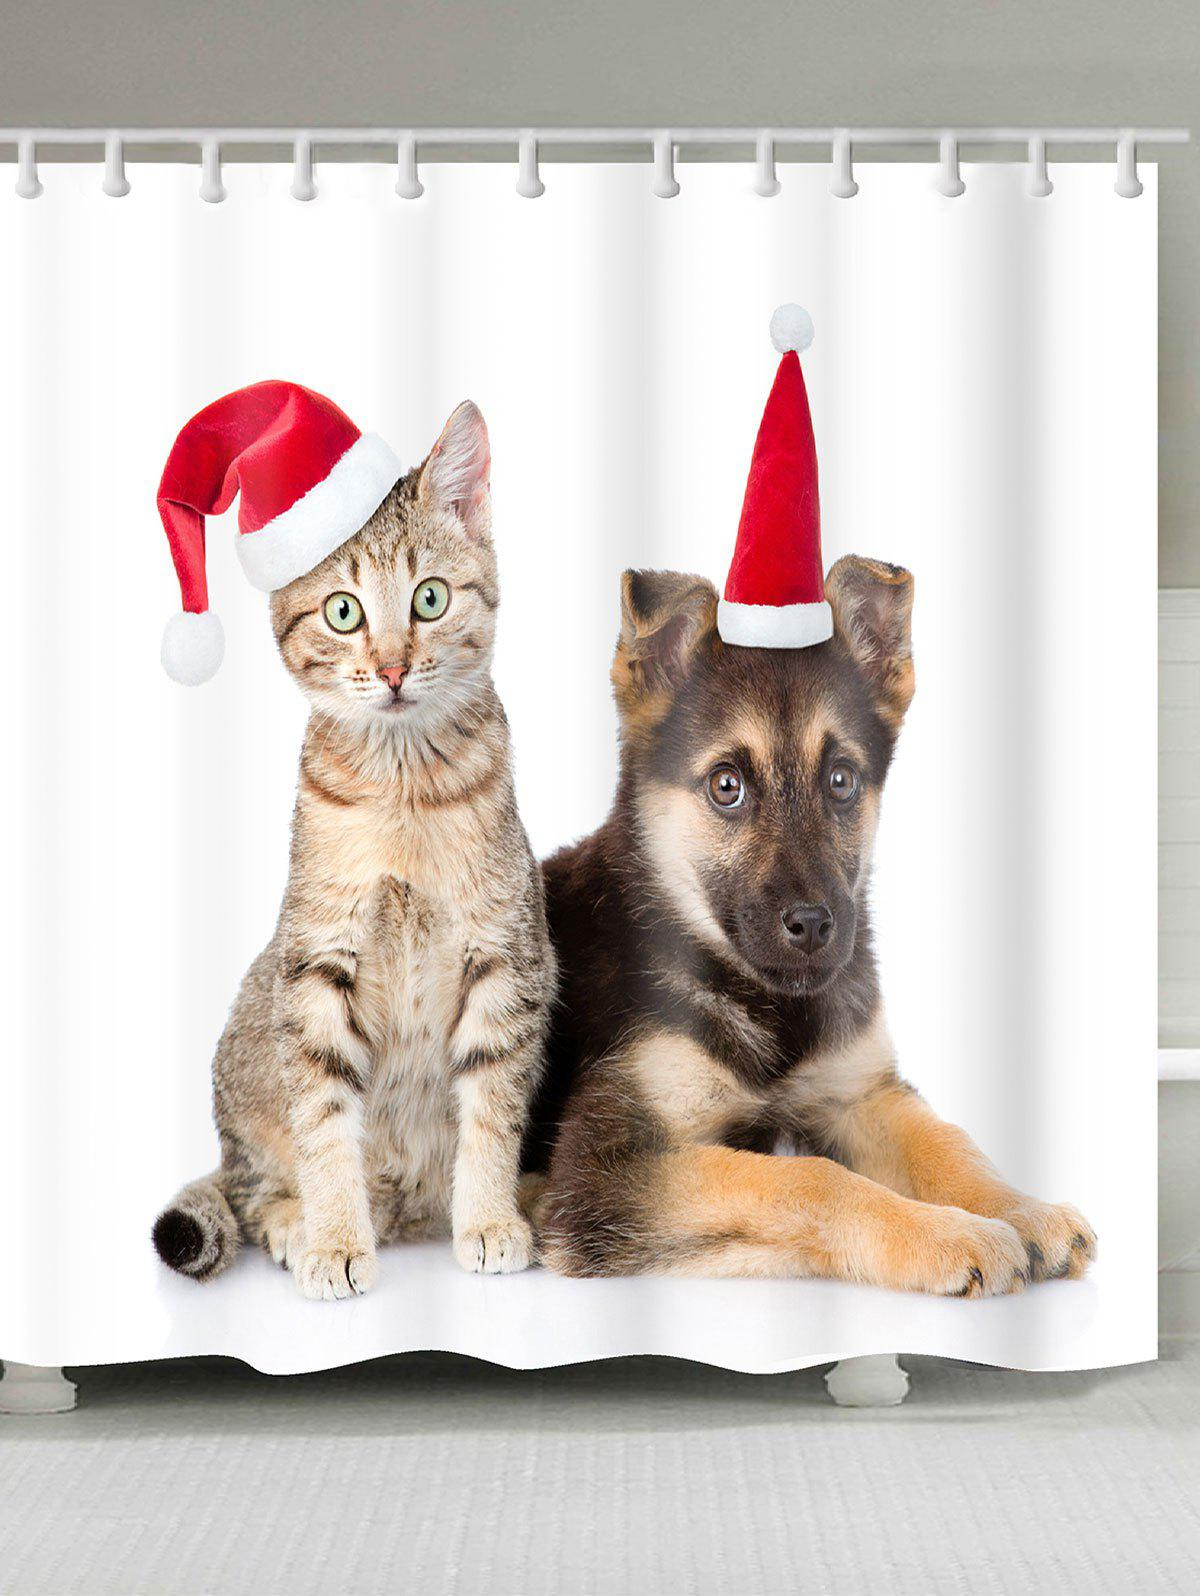 Christmas Cat And Dog Patterned Shower CurtainHOME<br><br>Size: W71 INCH * L79 INCH; Color: WHITE; Products Type: Shower Curtains; Materials: Polyester; Pattern: Animal; Style: Festival; Number of Hook Holes: W59 inch * L71 inch:10, W71 inch * L71 inch:12, W71 inch * L79 inch:12; Package Contents: 1 x Shower Curtain 1 x Hooks (Set);